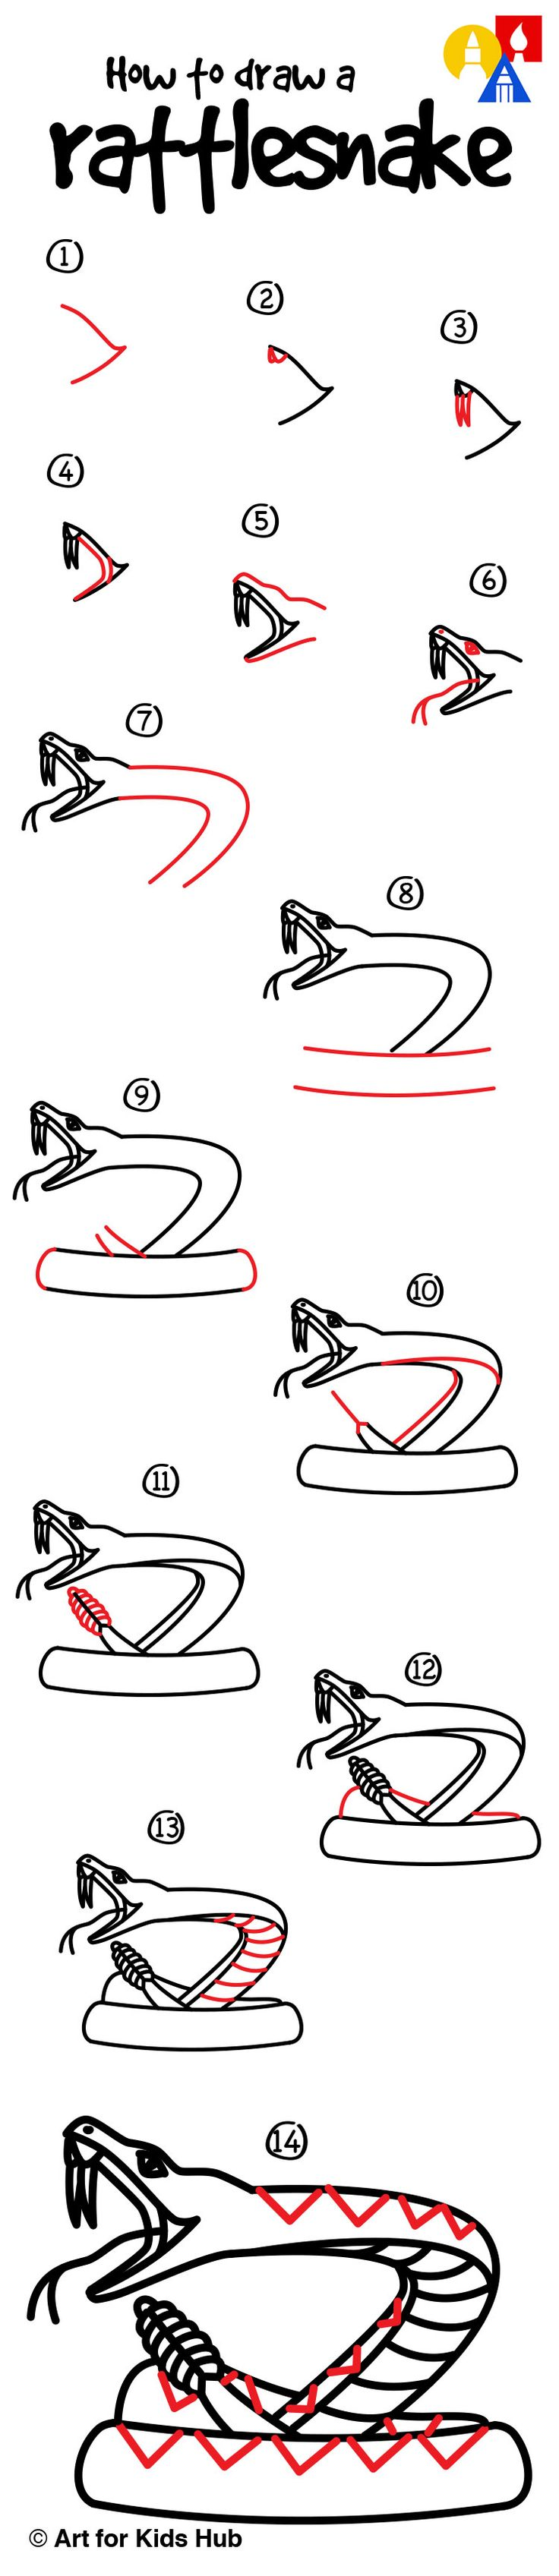 Week 28 - HISTORY (Lewis & Clark): Learn how to draw a rattlesnake!